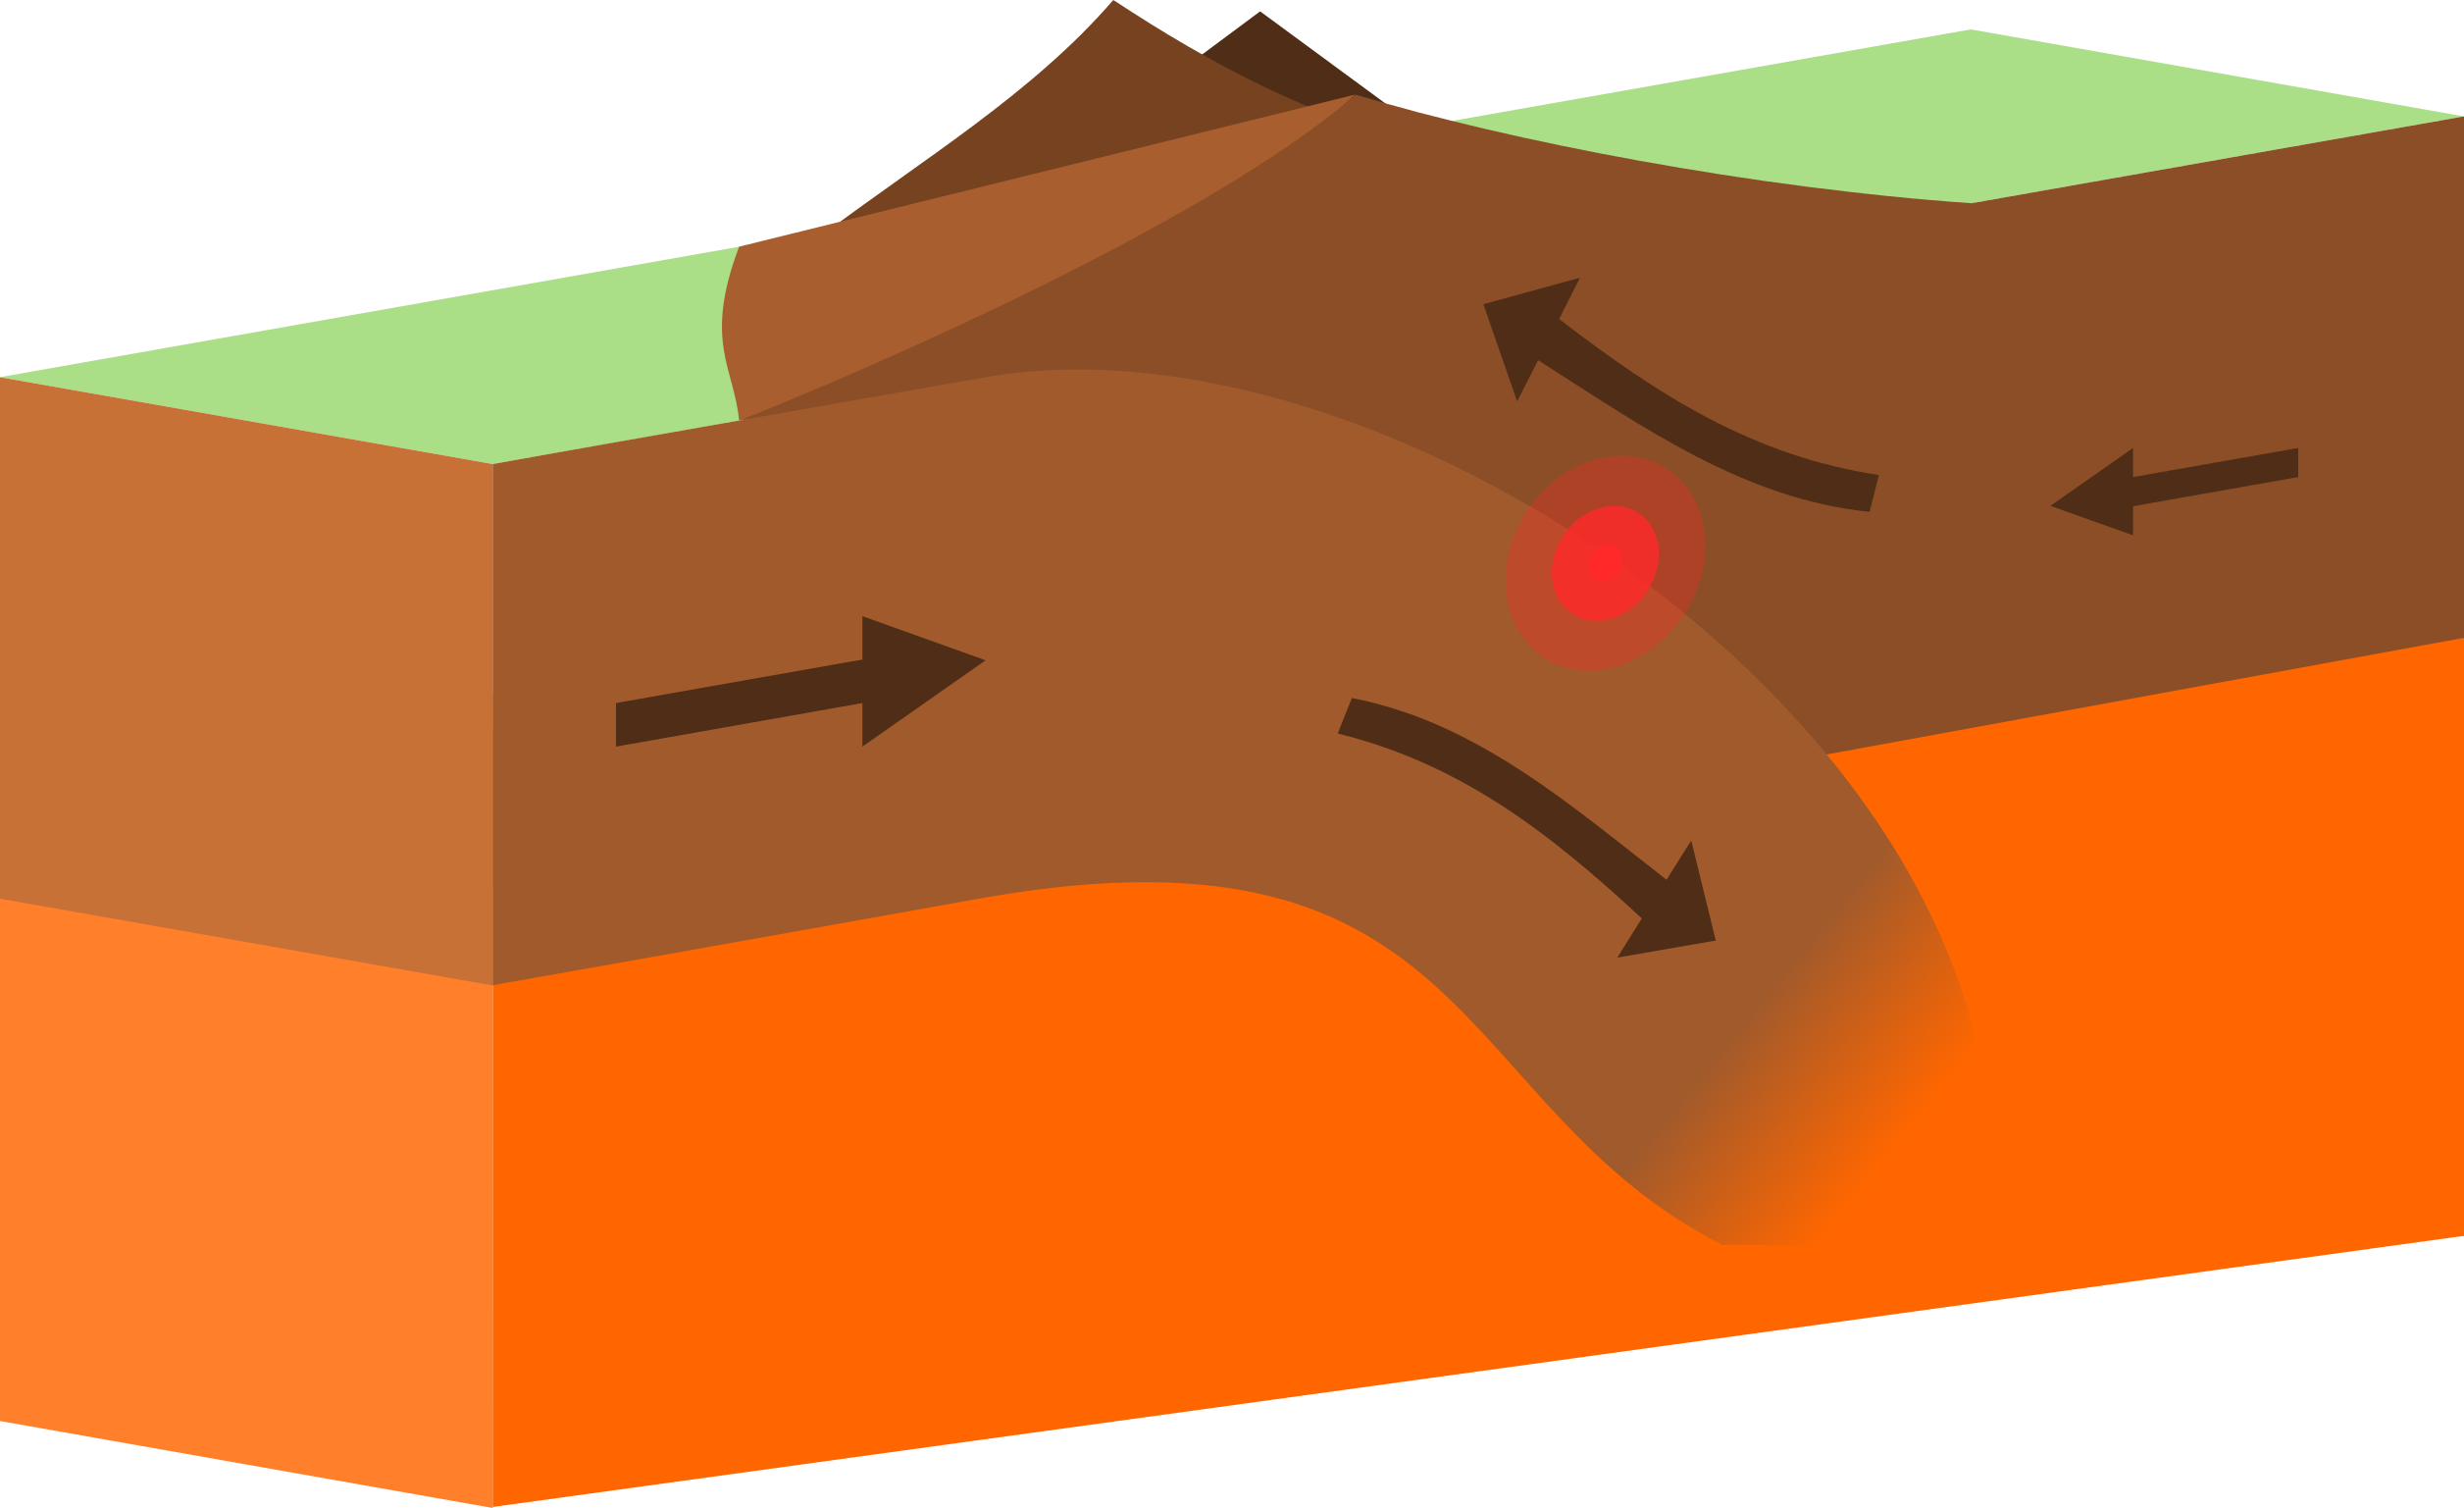 Earthquake clipart plate tectonic Wikipedia can earthquakes? How convergent